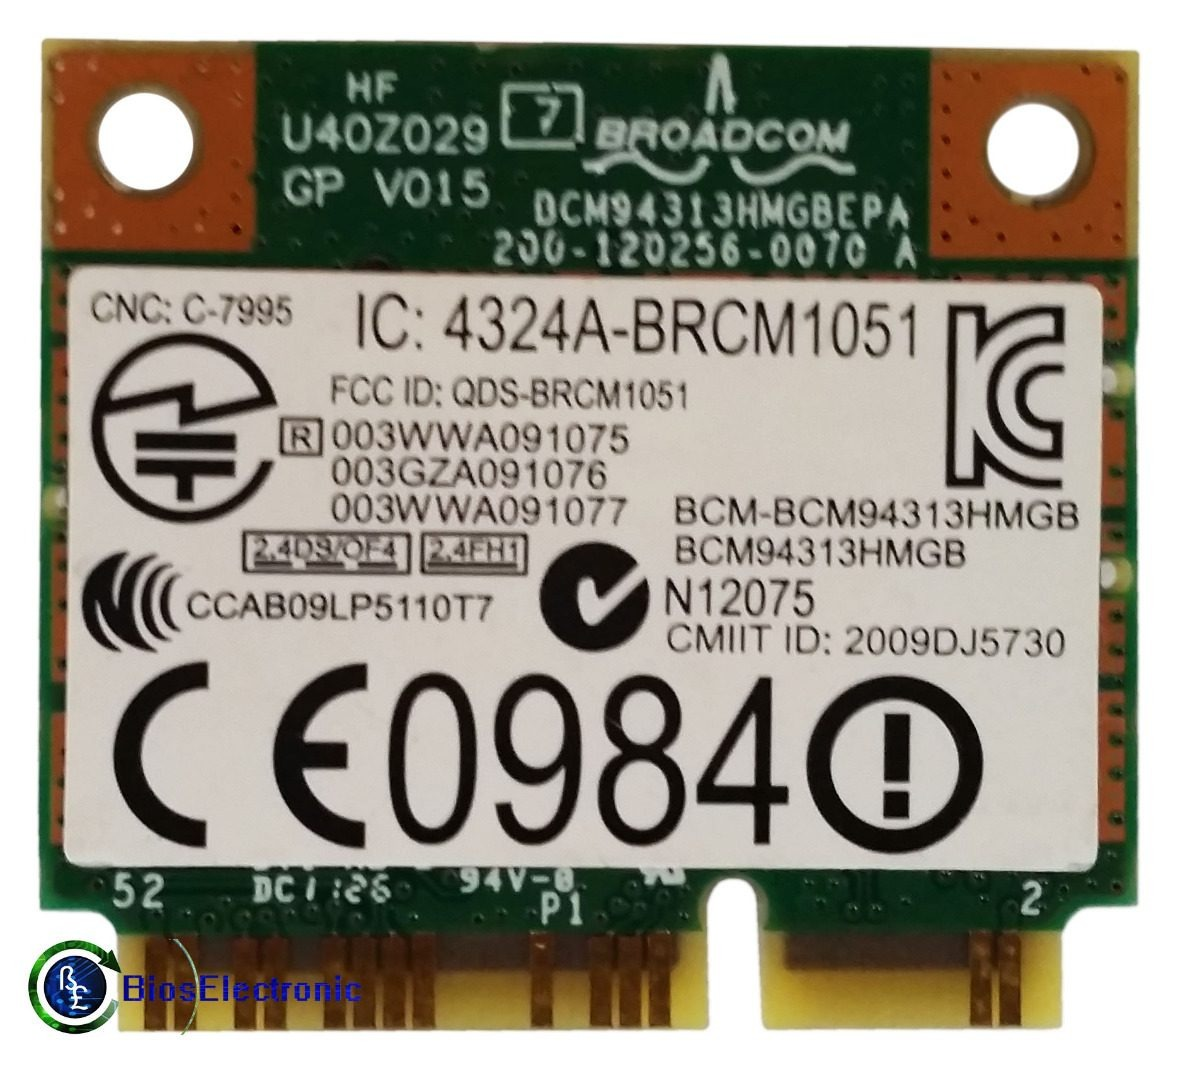 DELL N4050 WIFI DRIVERS FOR MAC